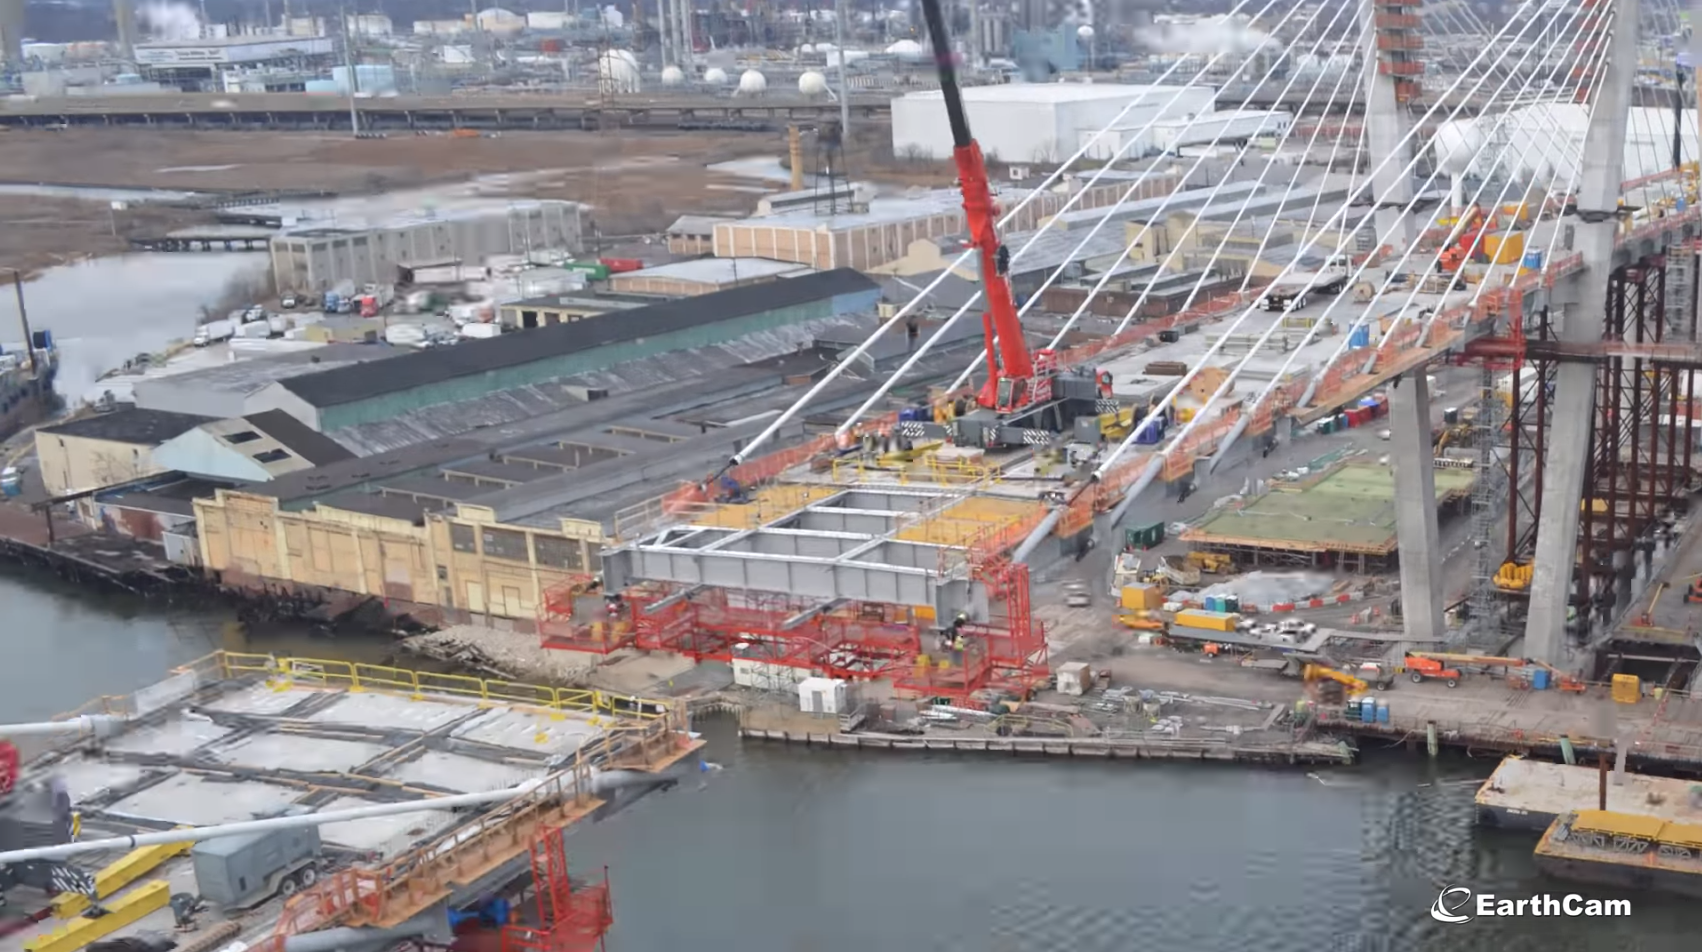 Watch 4 years of Goethals Bridge construction from EarthCam